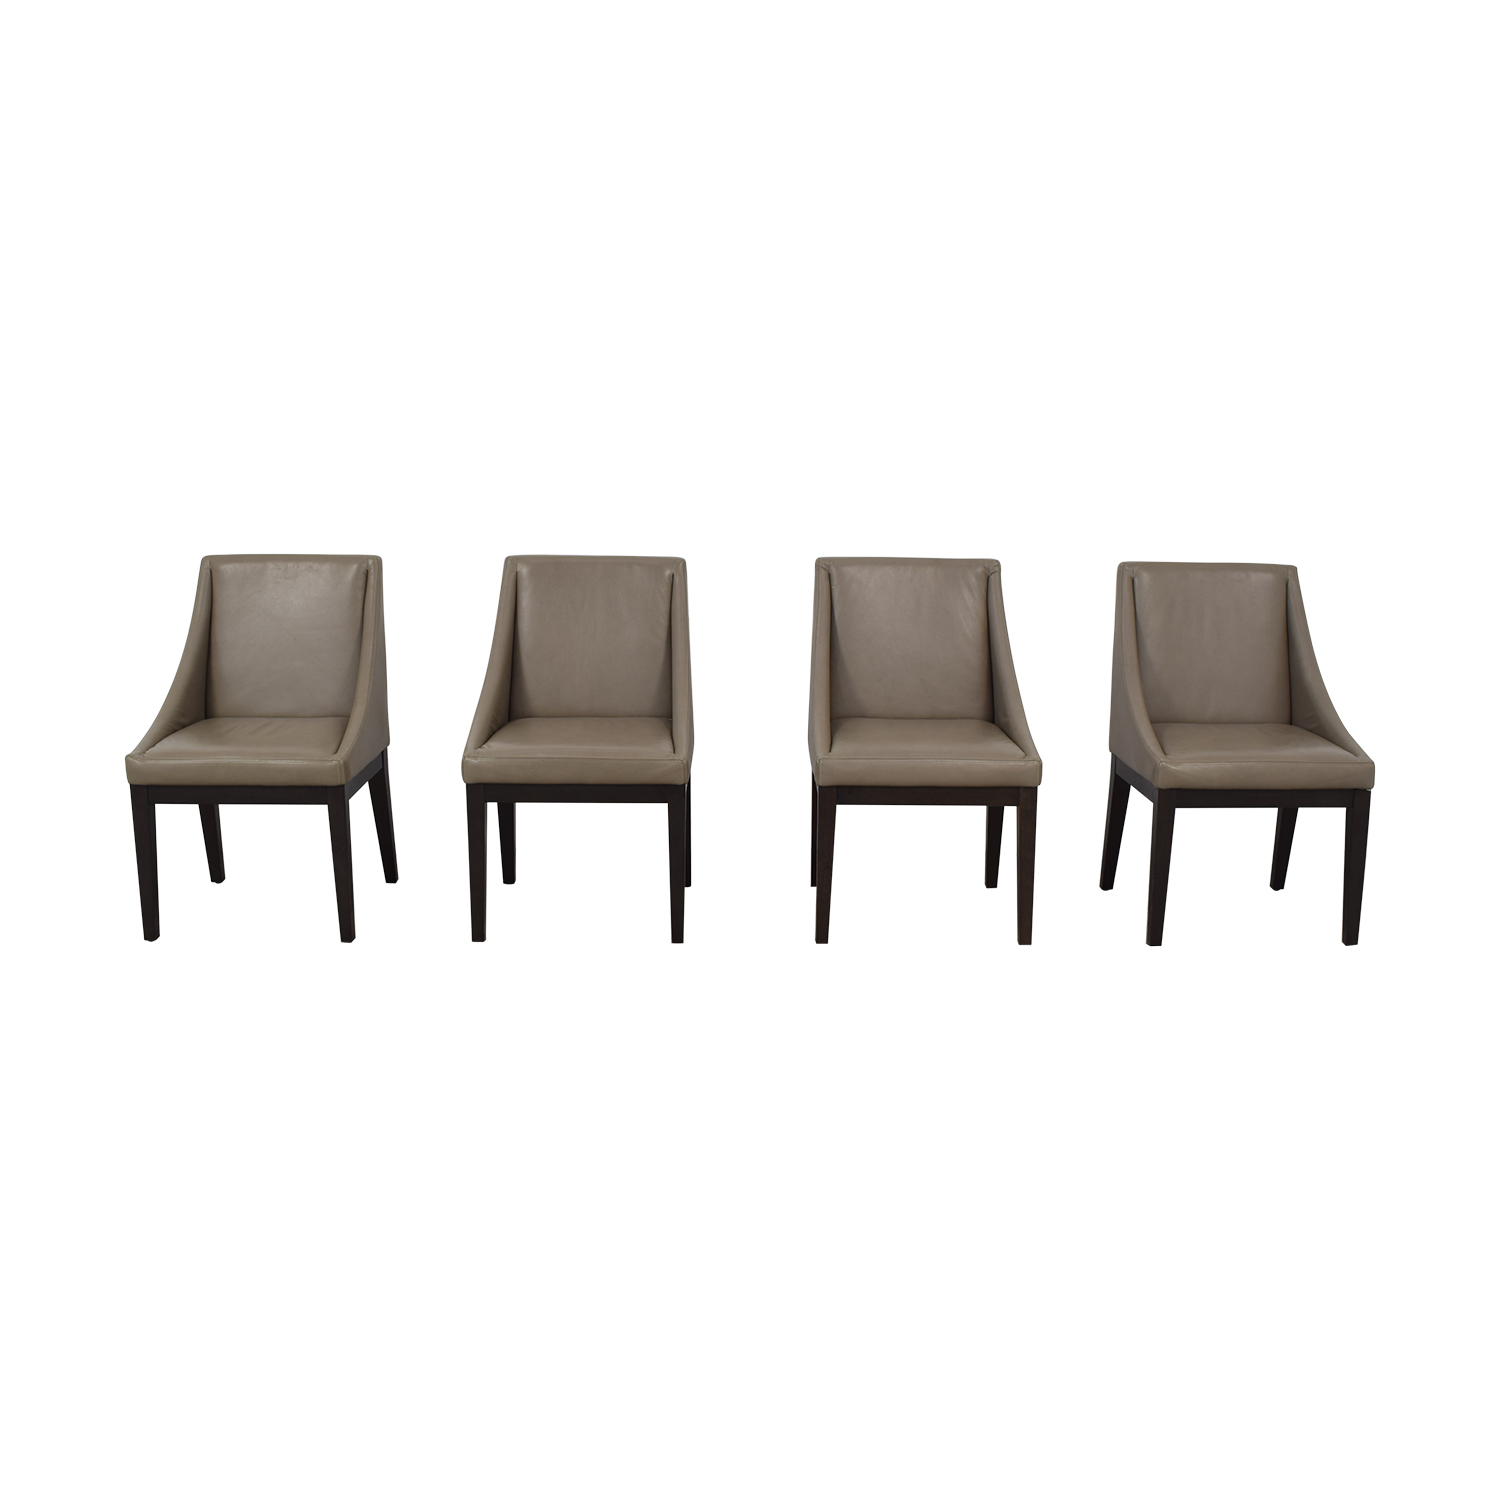 buy West Elm West Elm Leather Chairs online